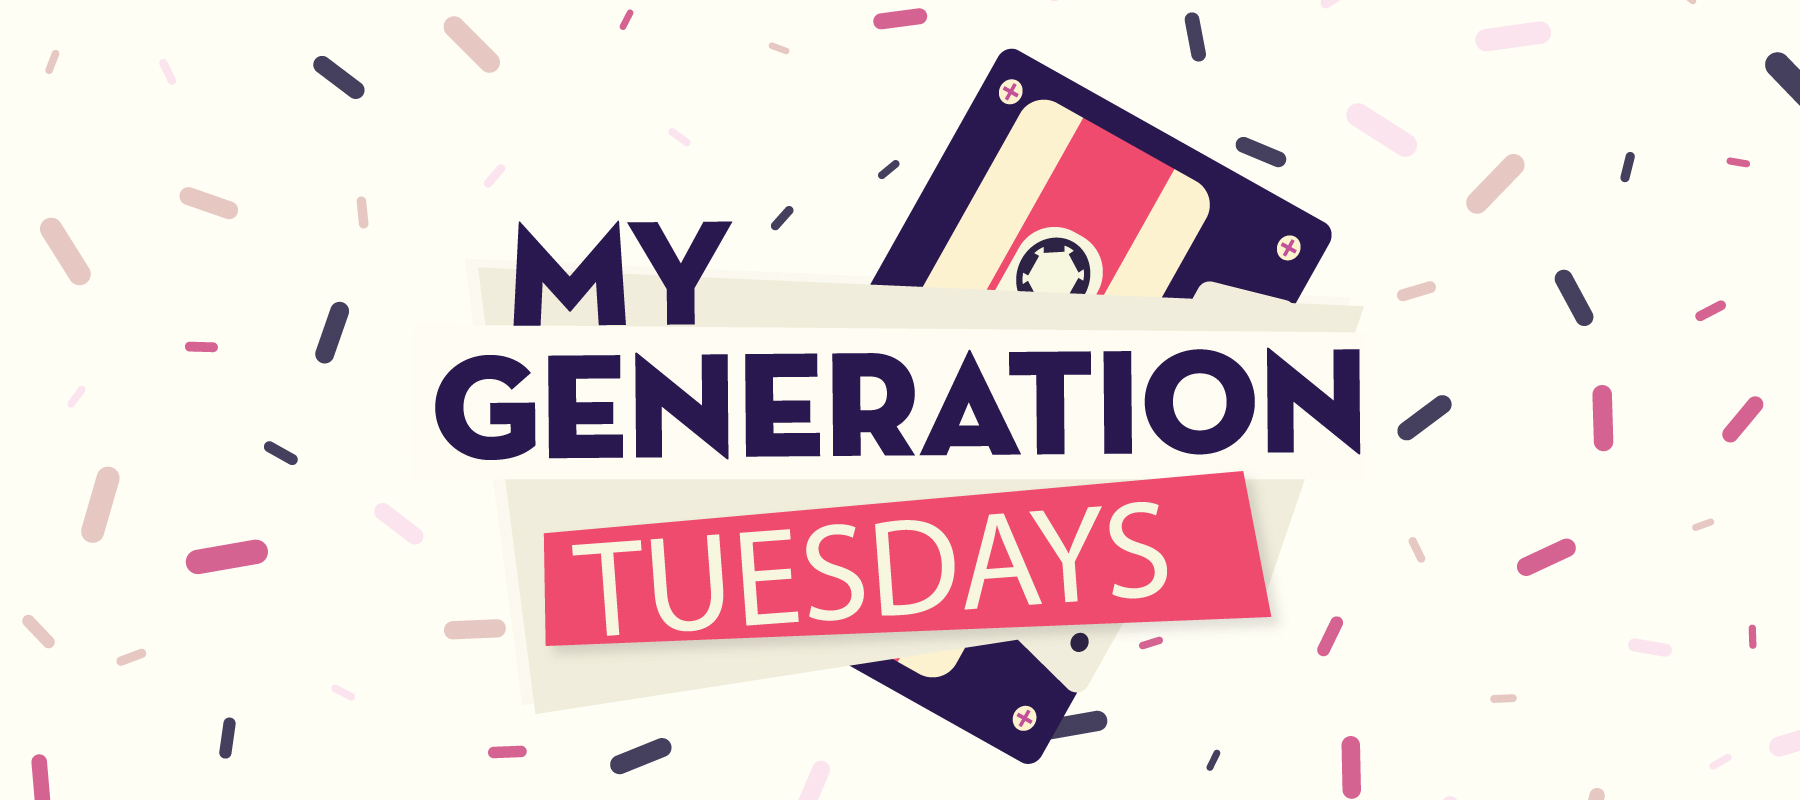 My Generation Tuesdays